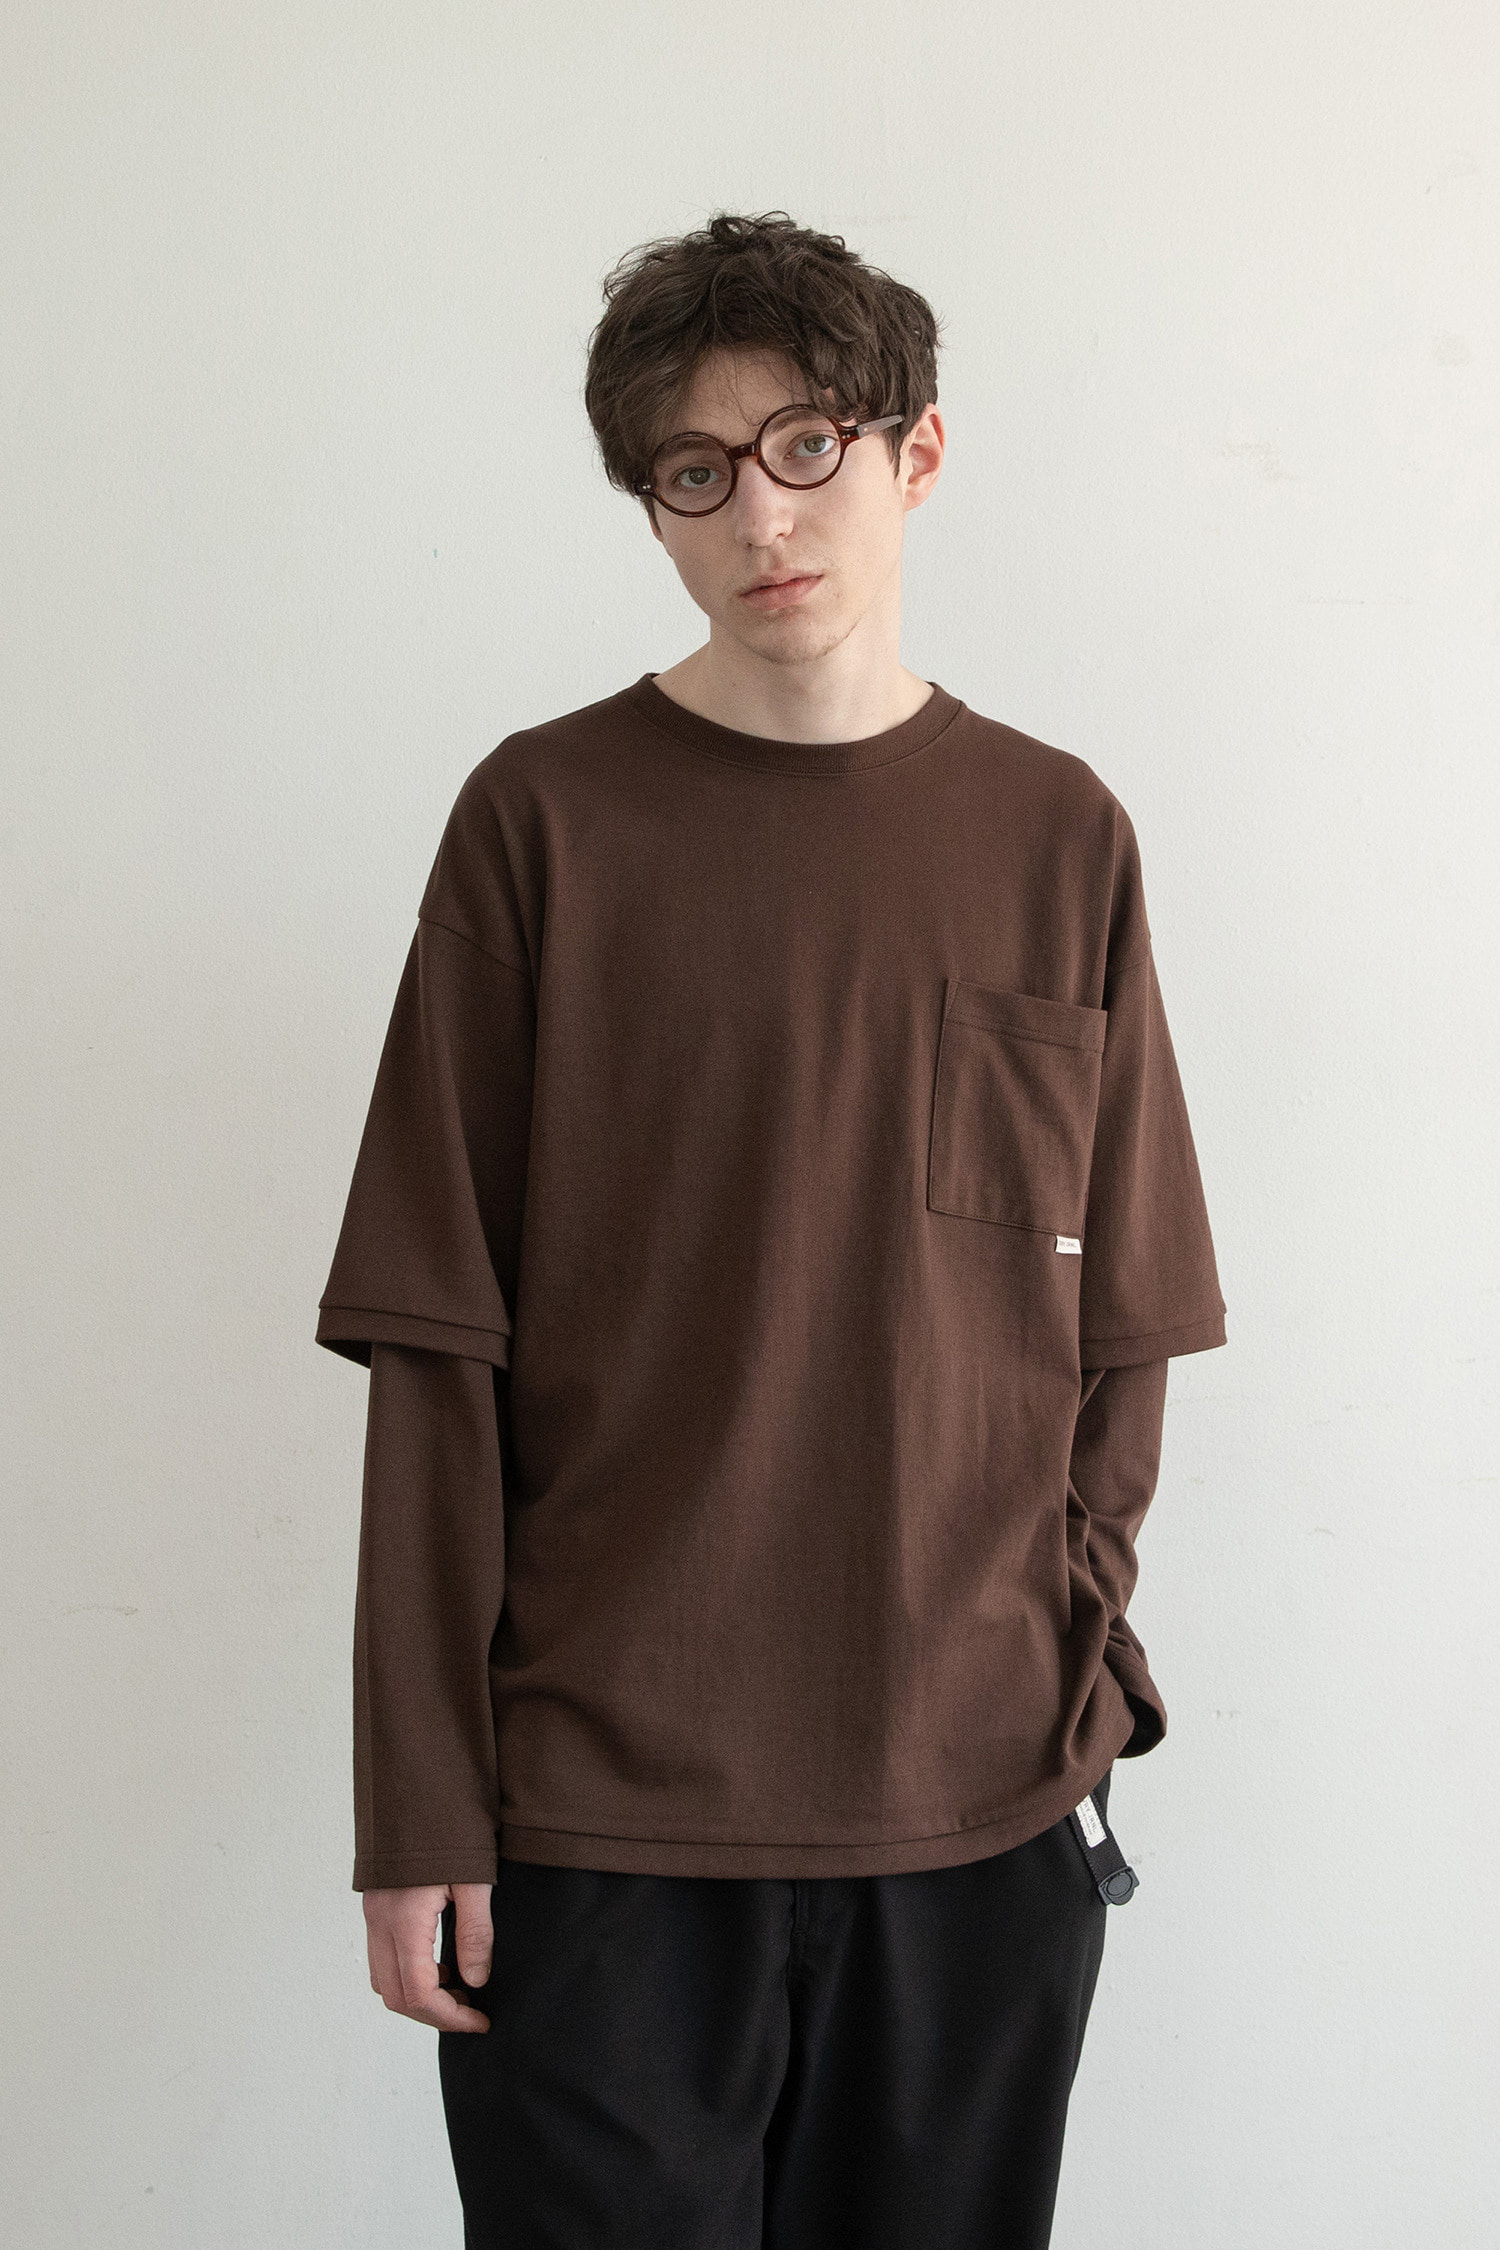 Sk8er Layered T (Brown)